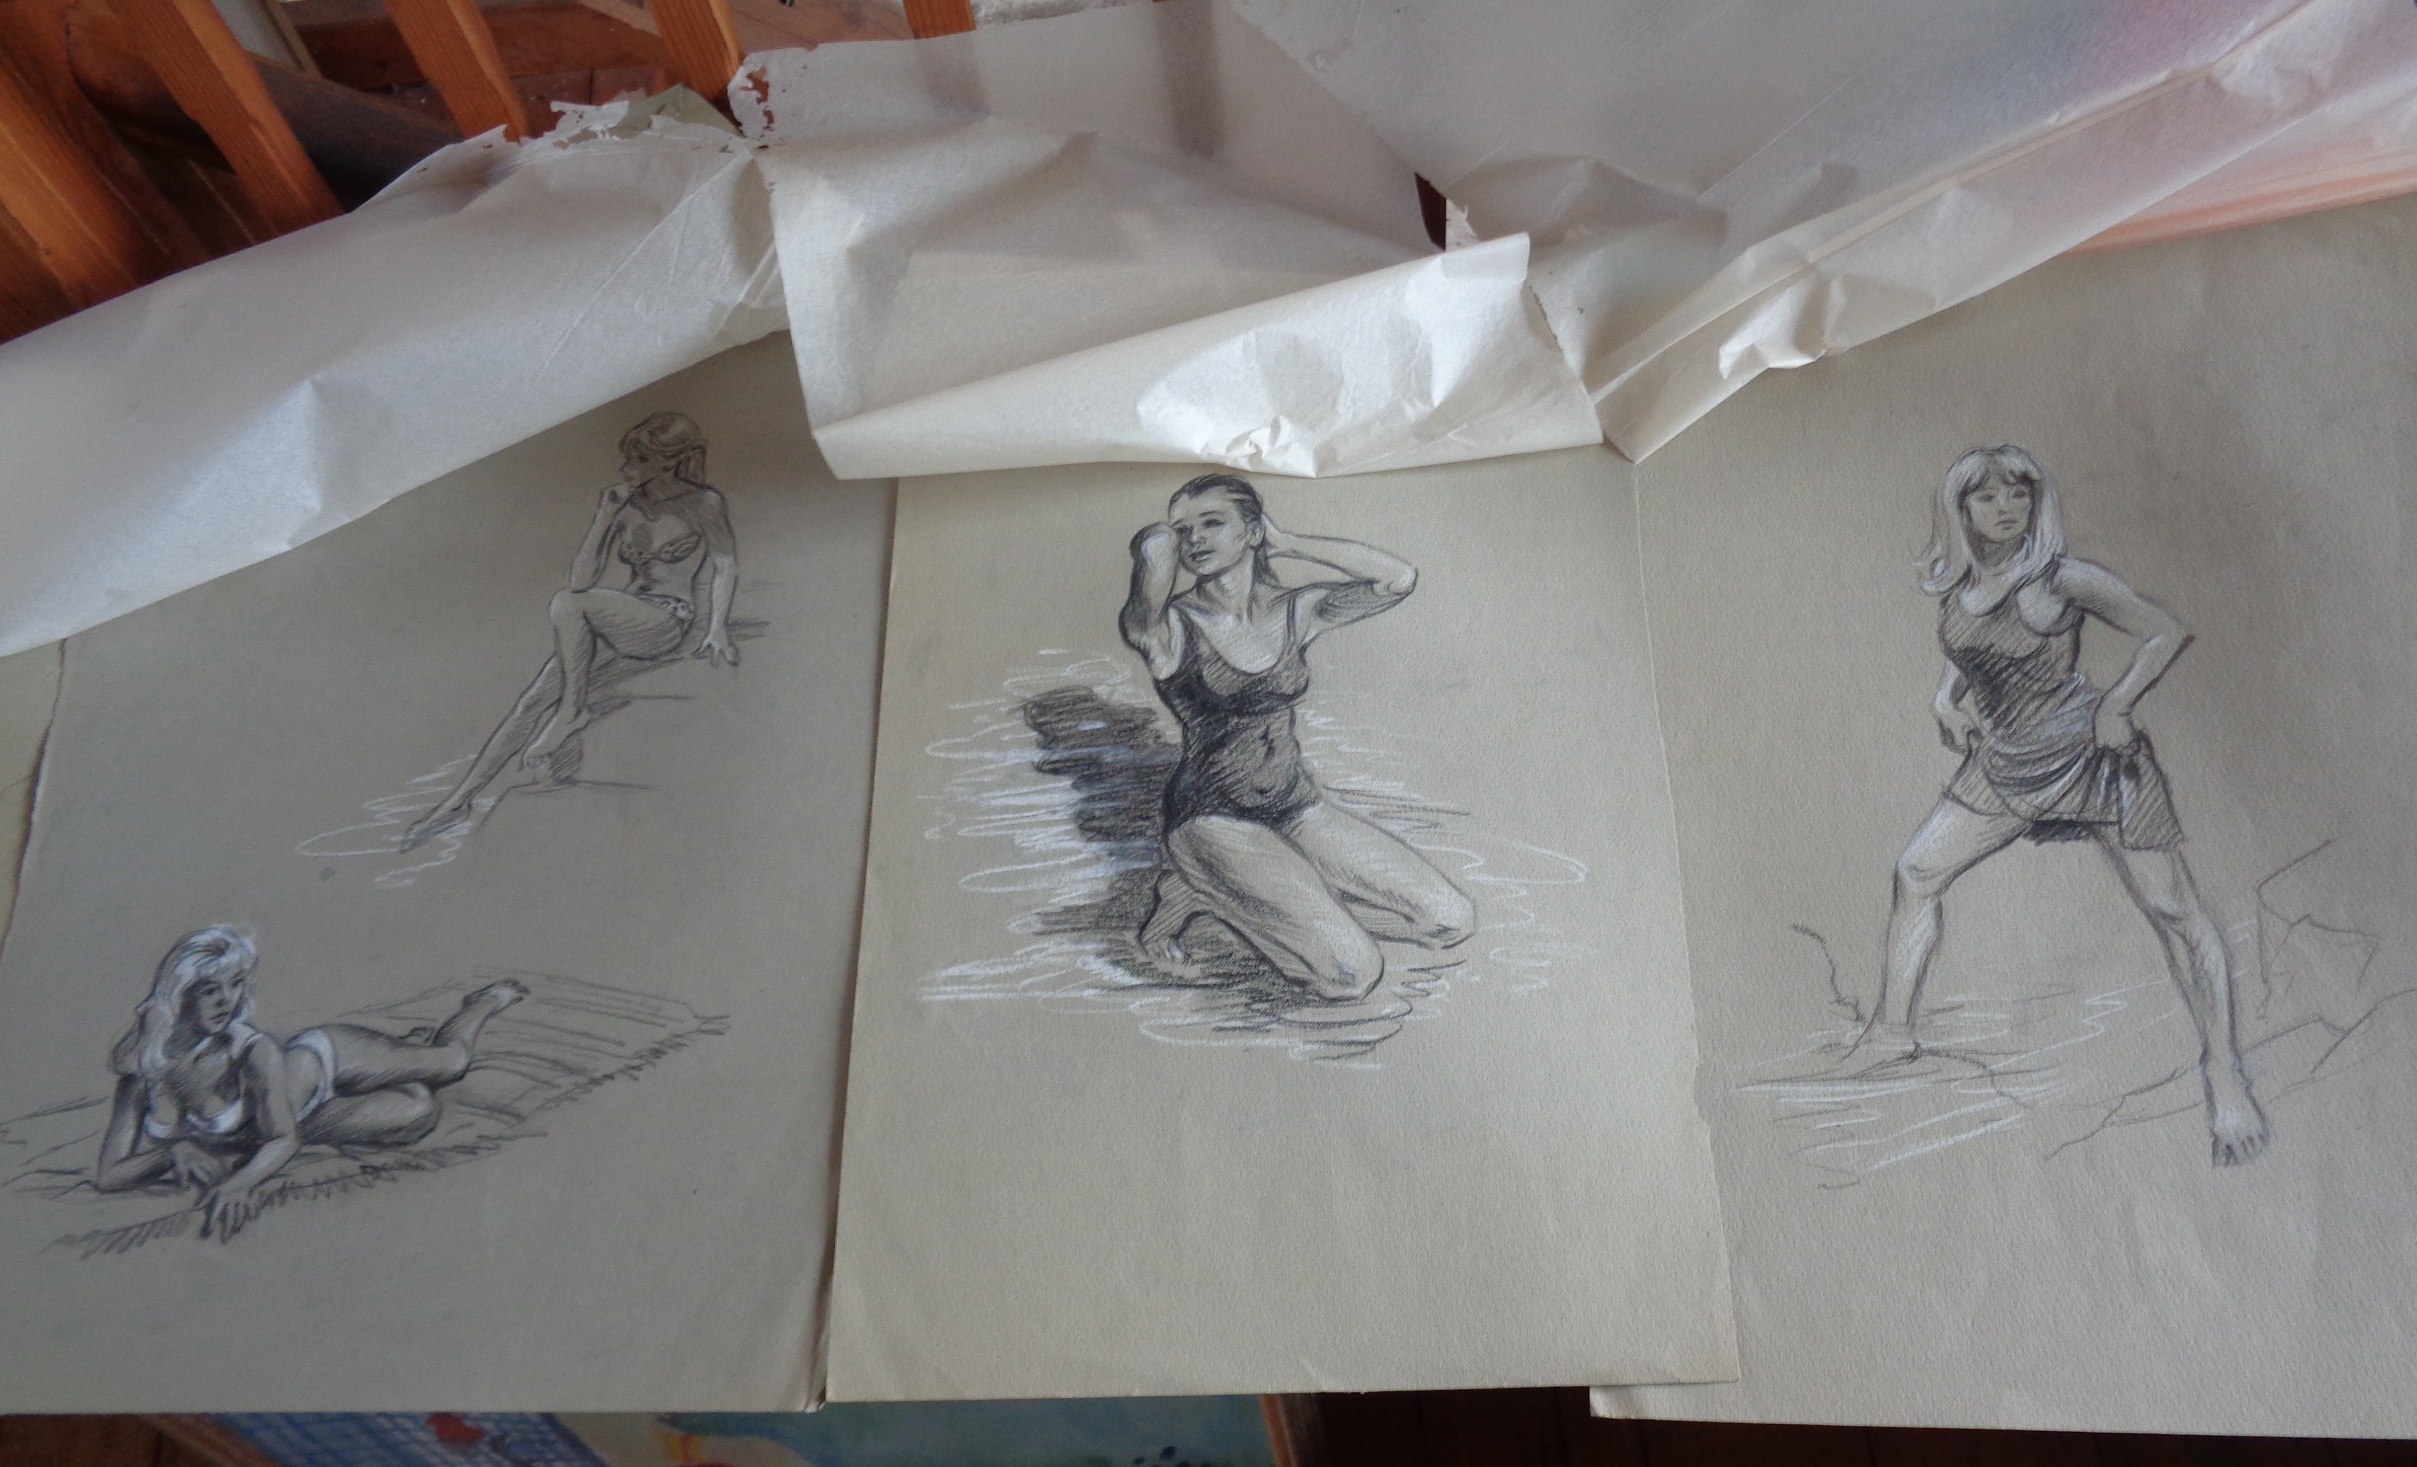 Lot 24 - Folio of sketches with 3 original illustrations for Enid Blyton books by Dorothy Brook, and